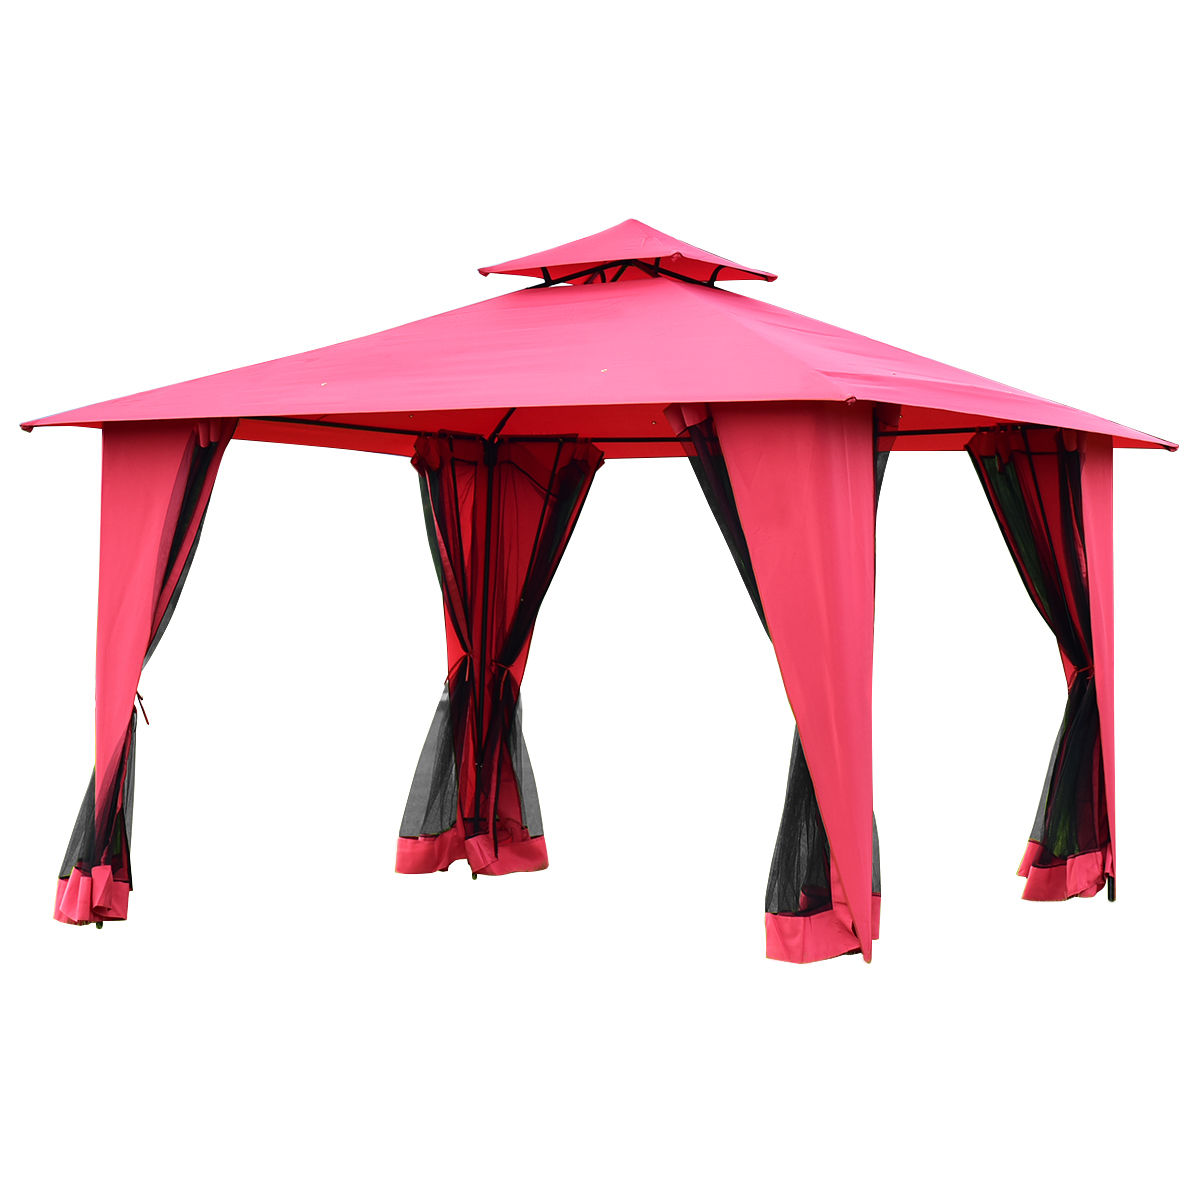 Gymax Burgundy 11'x11' 2-Tier Gazebo Canopy Shelter Patio Party Tent by Gymax